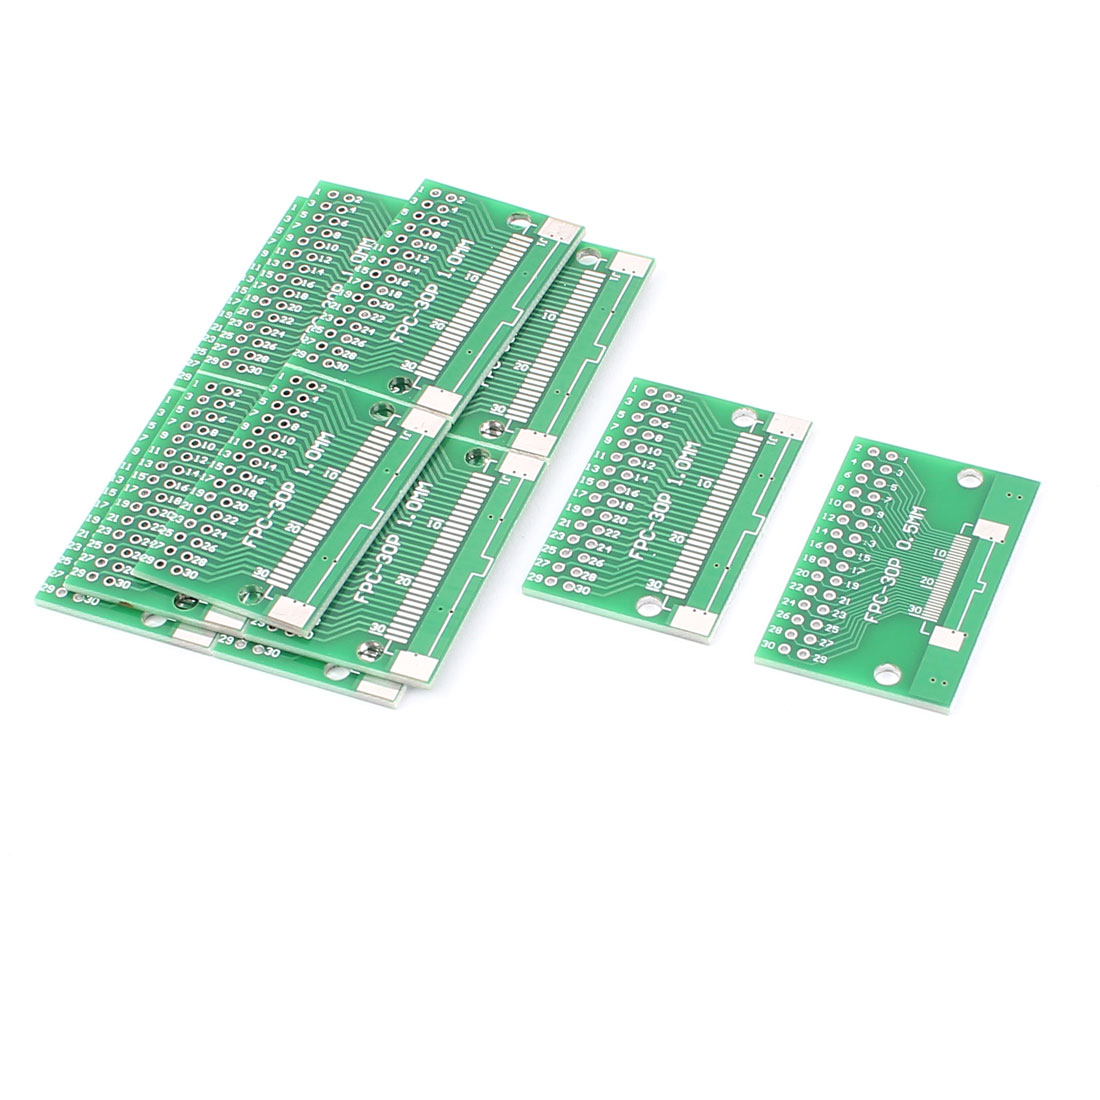 "12Pcs 40 x 26mm/1.6"" x 1"" FPC 30Pins Adapter PCB Converter Board"